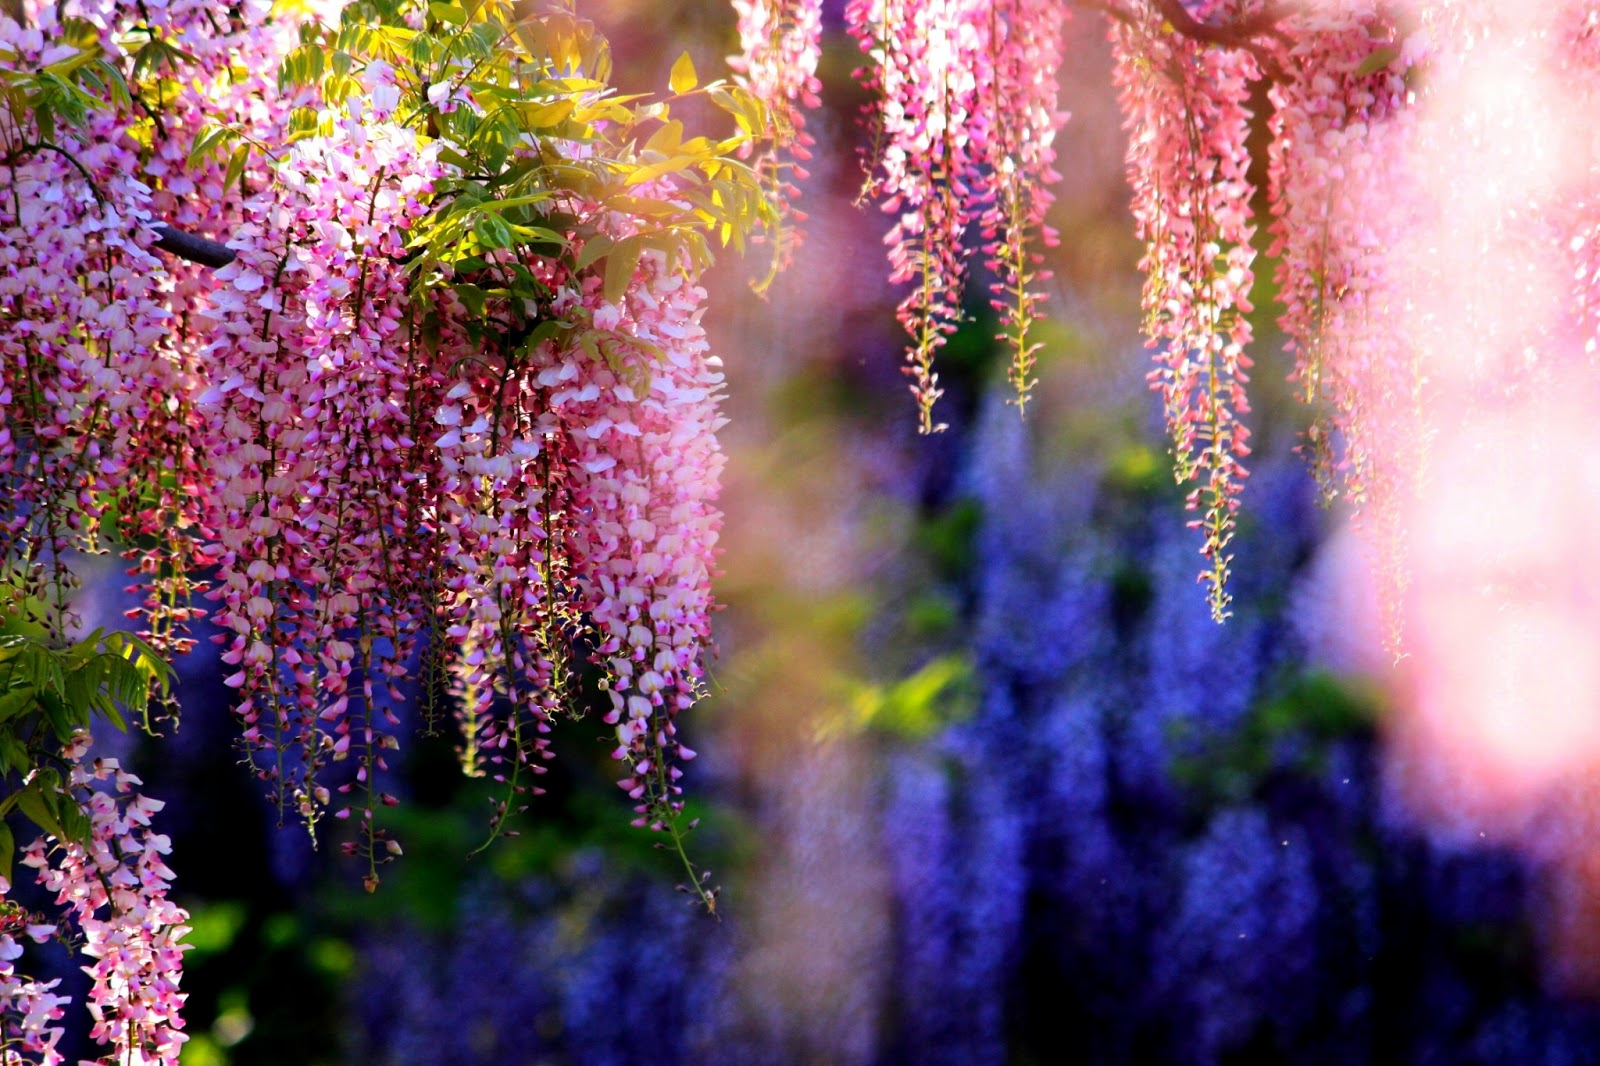 Wallpaper: Wisteria Tree Is Extreem Beauty Of Nature